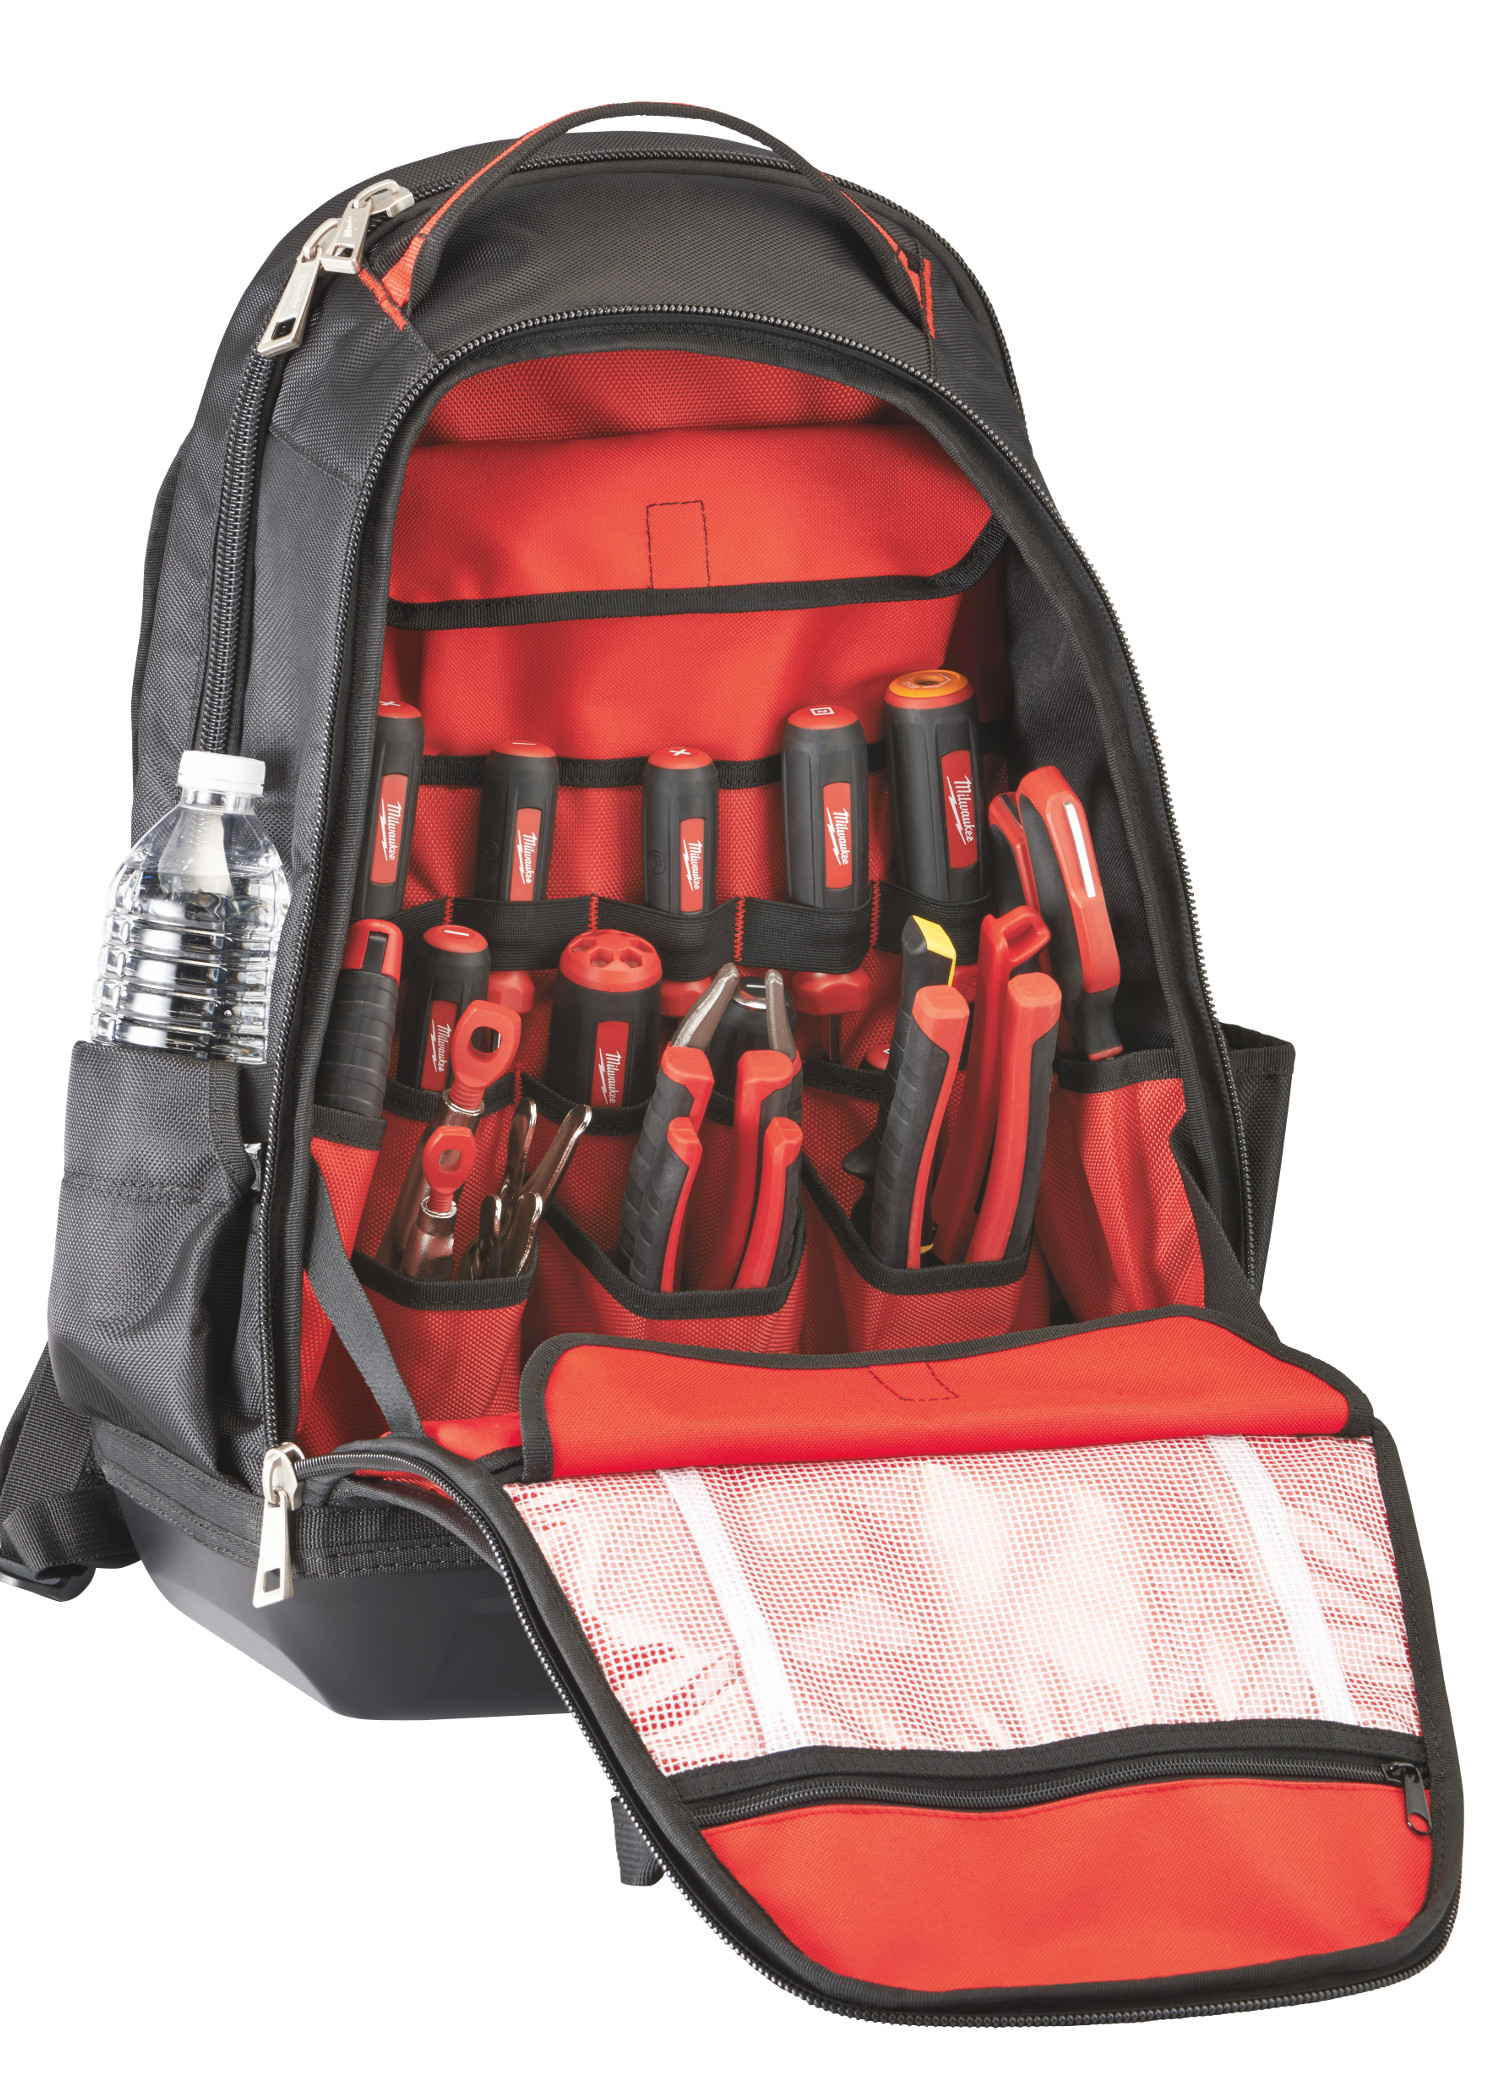 Milwaukee Job Site Backpack 48 22 8200 A Concord Carpenter